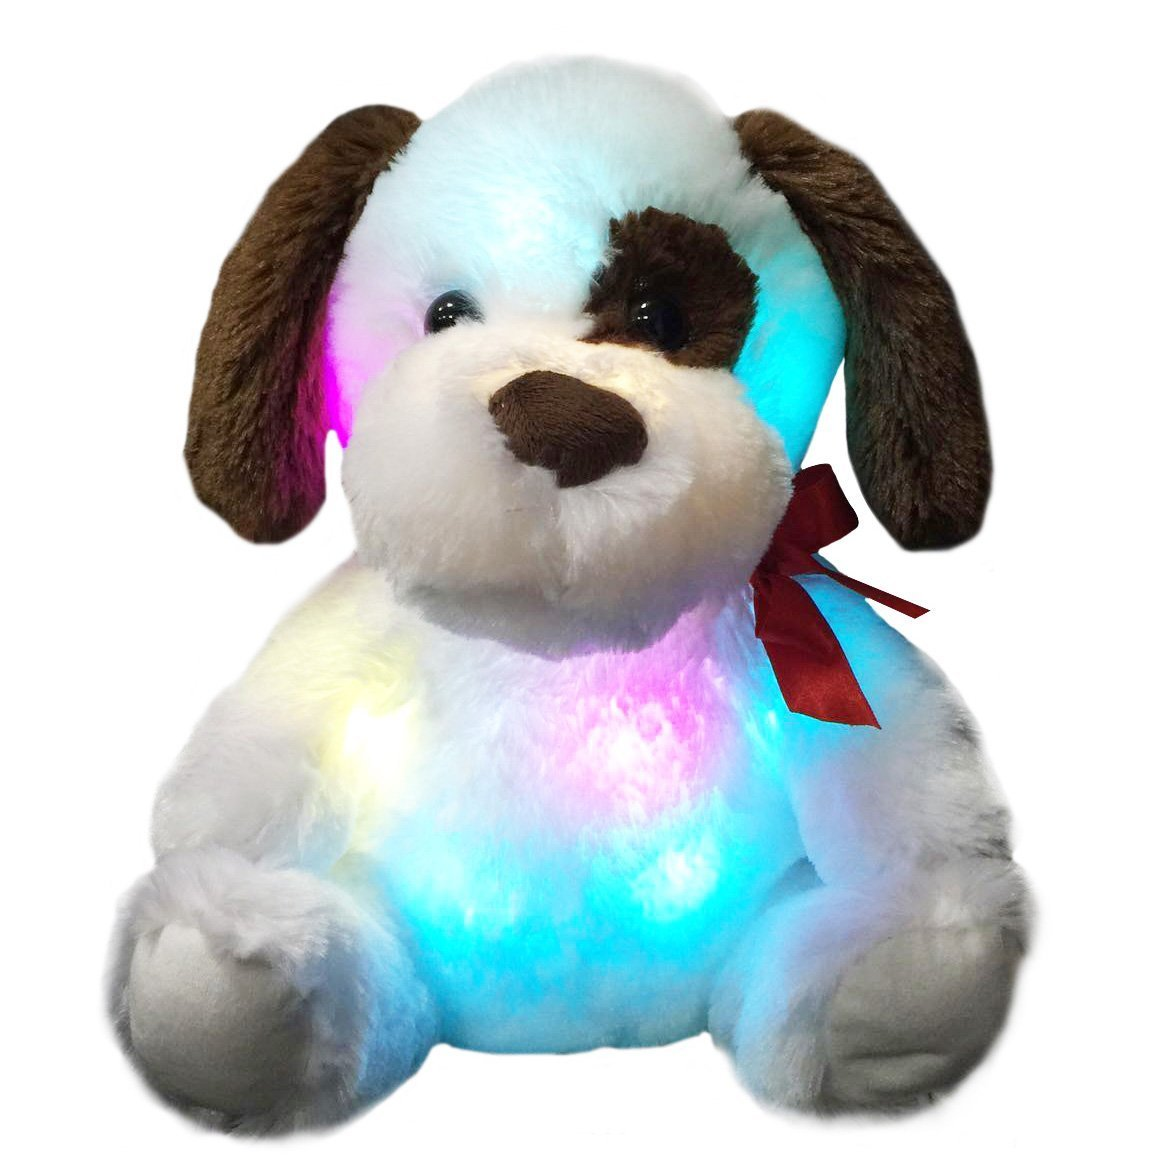 fd453a3e1 Amazon.com: WEWILL Glow Puppy Stuffed Animal Dog Plush Toy LED Nightlight  Companion Gift for Kids on Birthday Christmas,12-Inch: Toys & Games